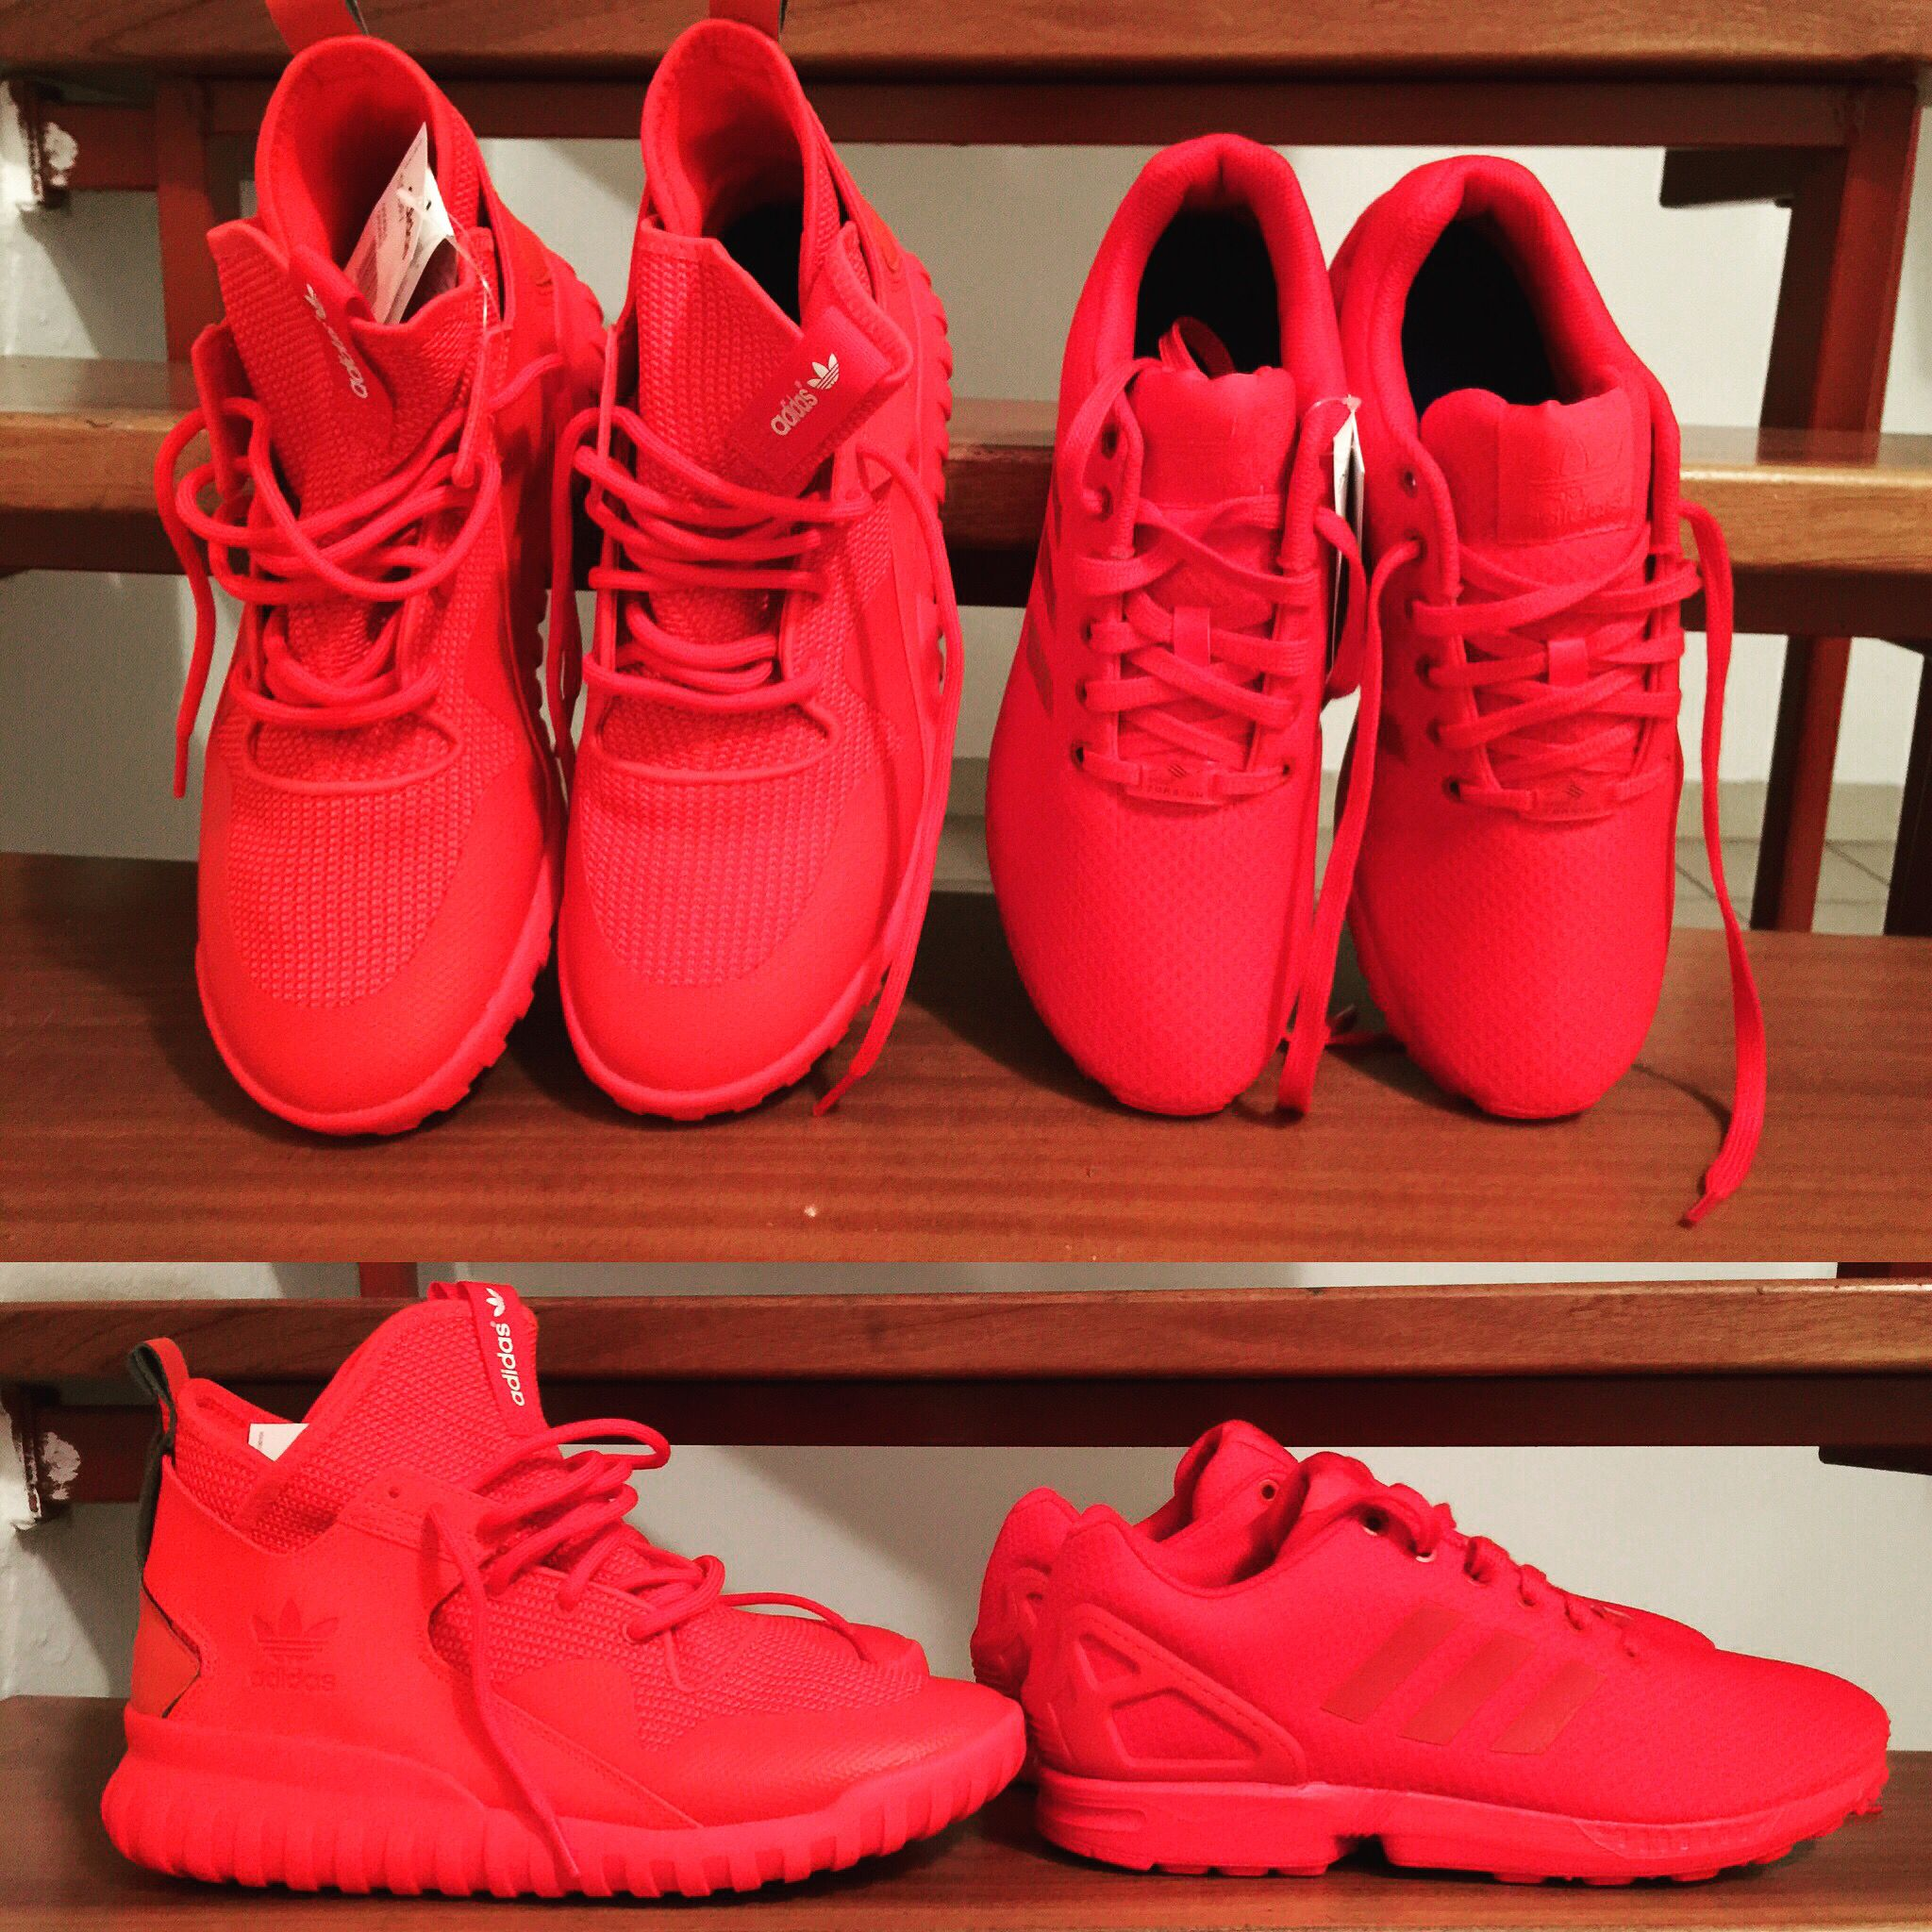 c89e67b45 ... promo code for adidas tubular x adidas zx flux triple red c64fe 23c19